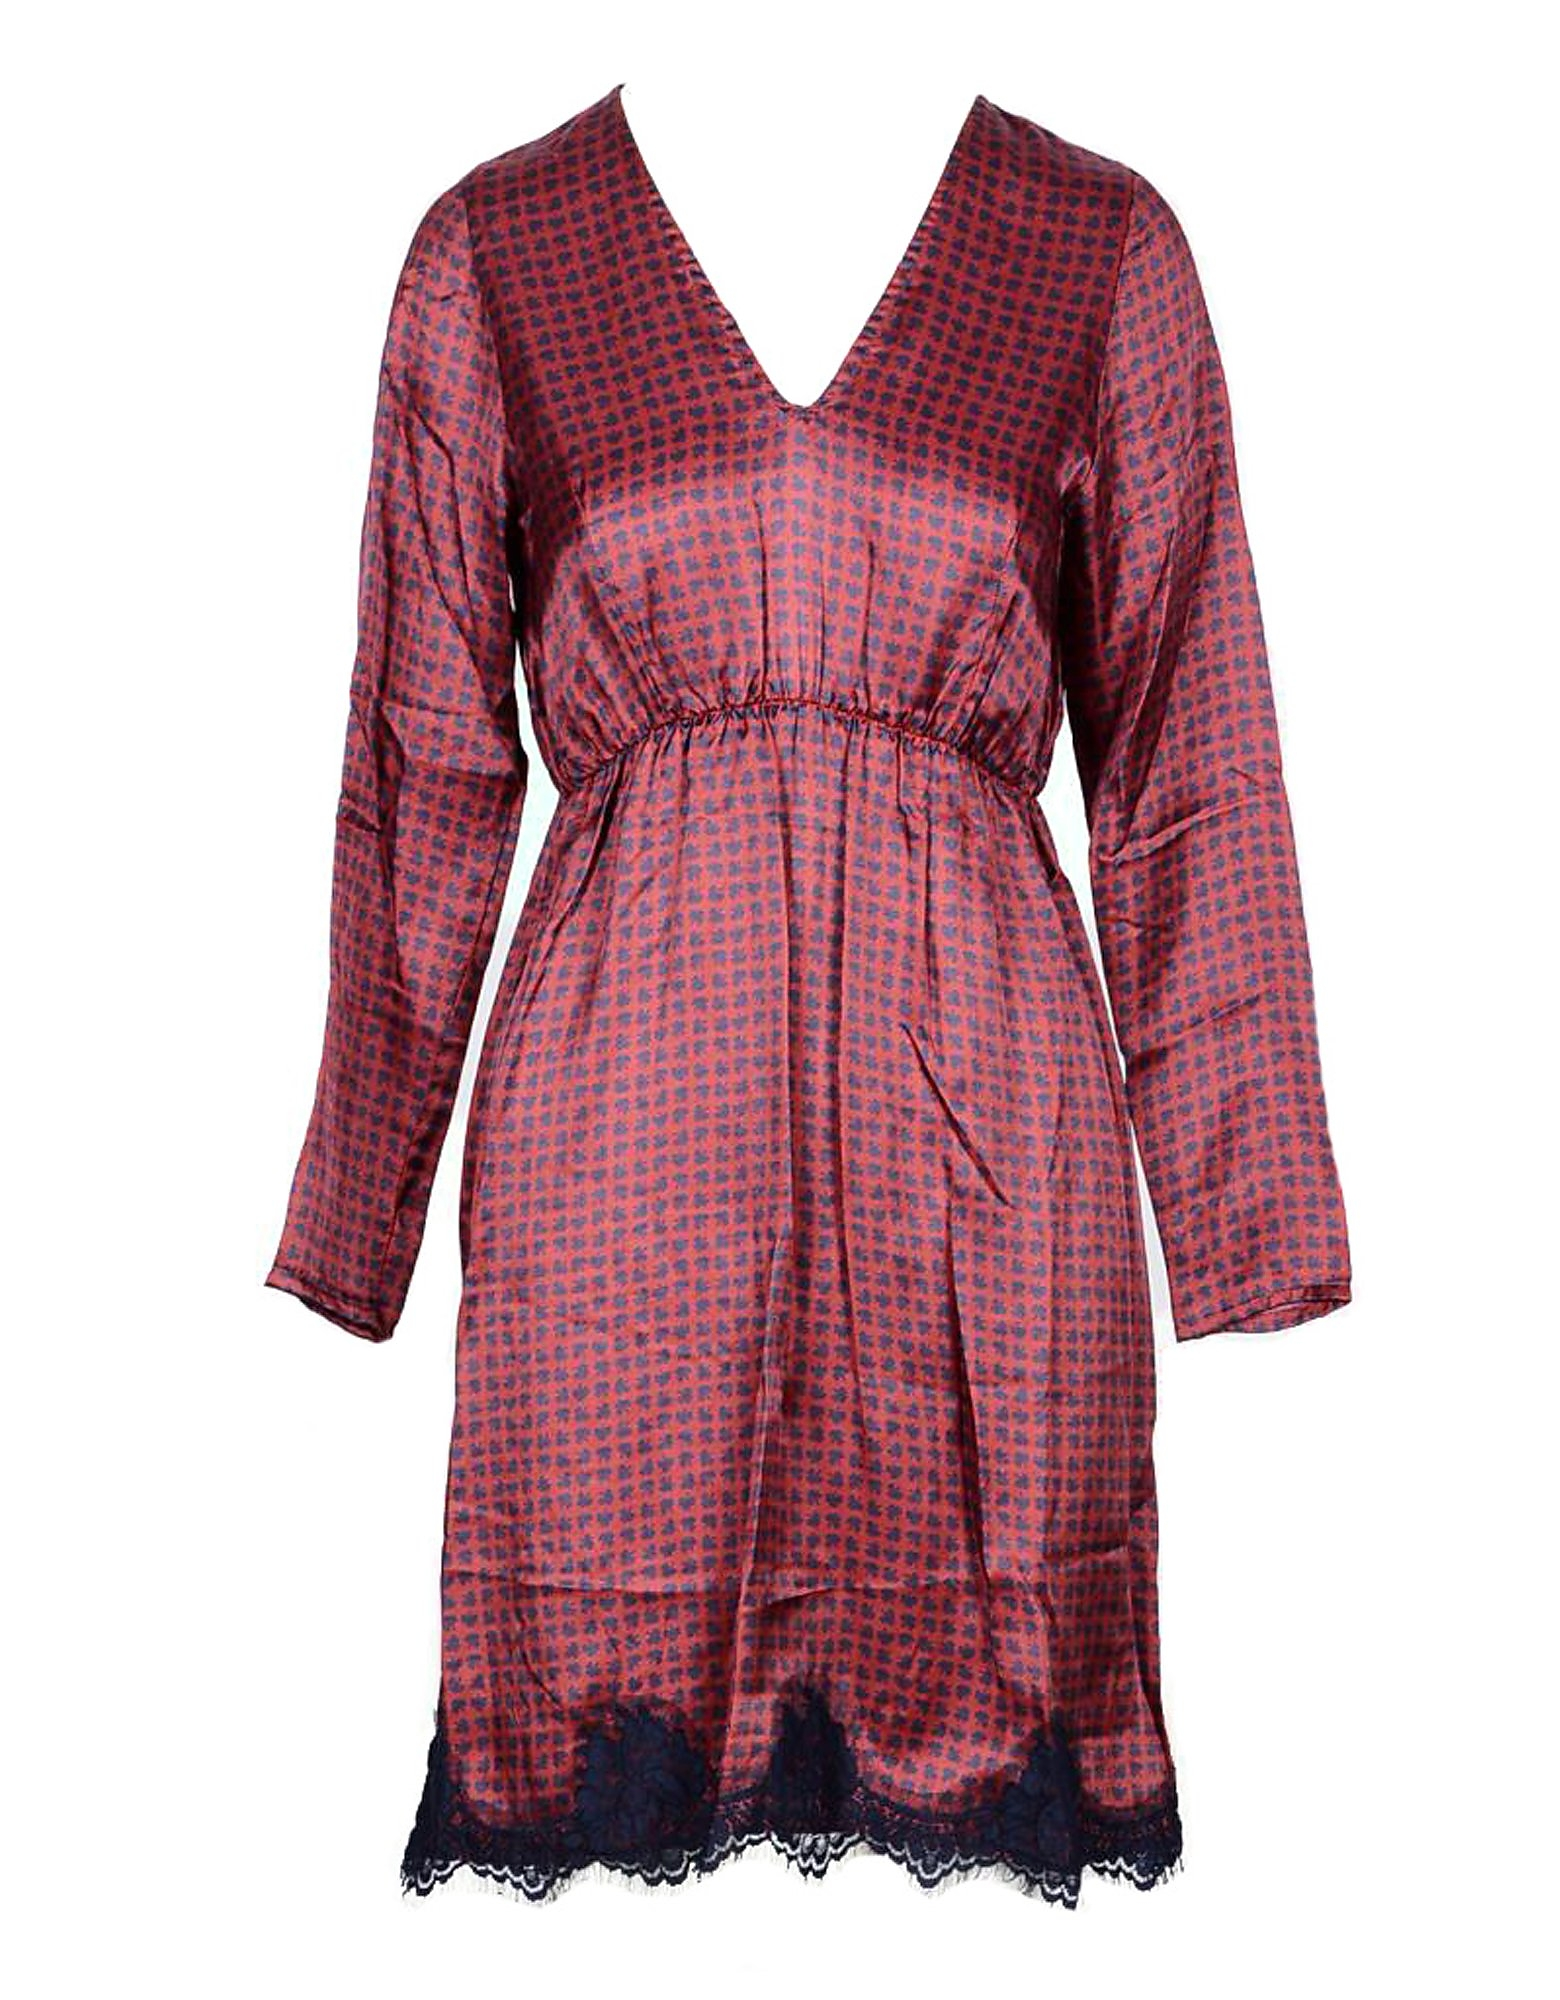 Pink Memories Designer Dresses & Jumpsuits, Red Viscose and Silk Blend Women's Mini Dress